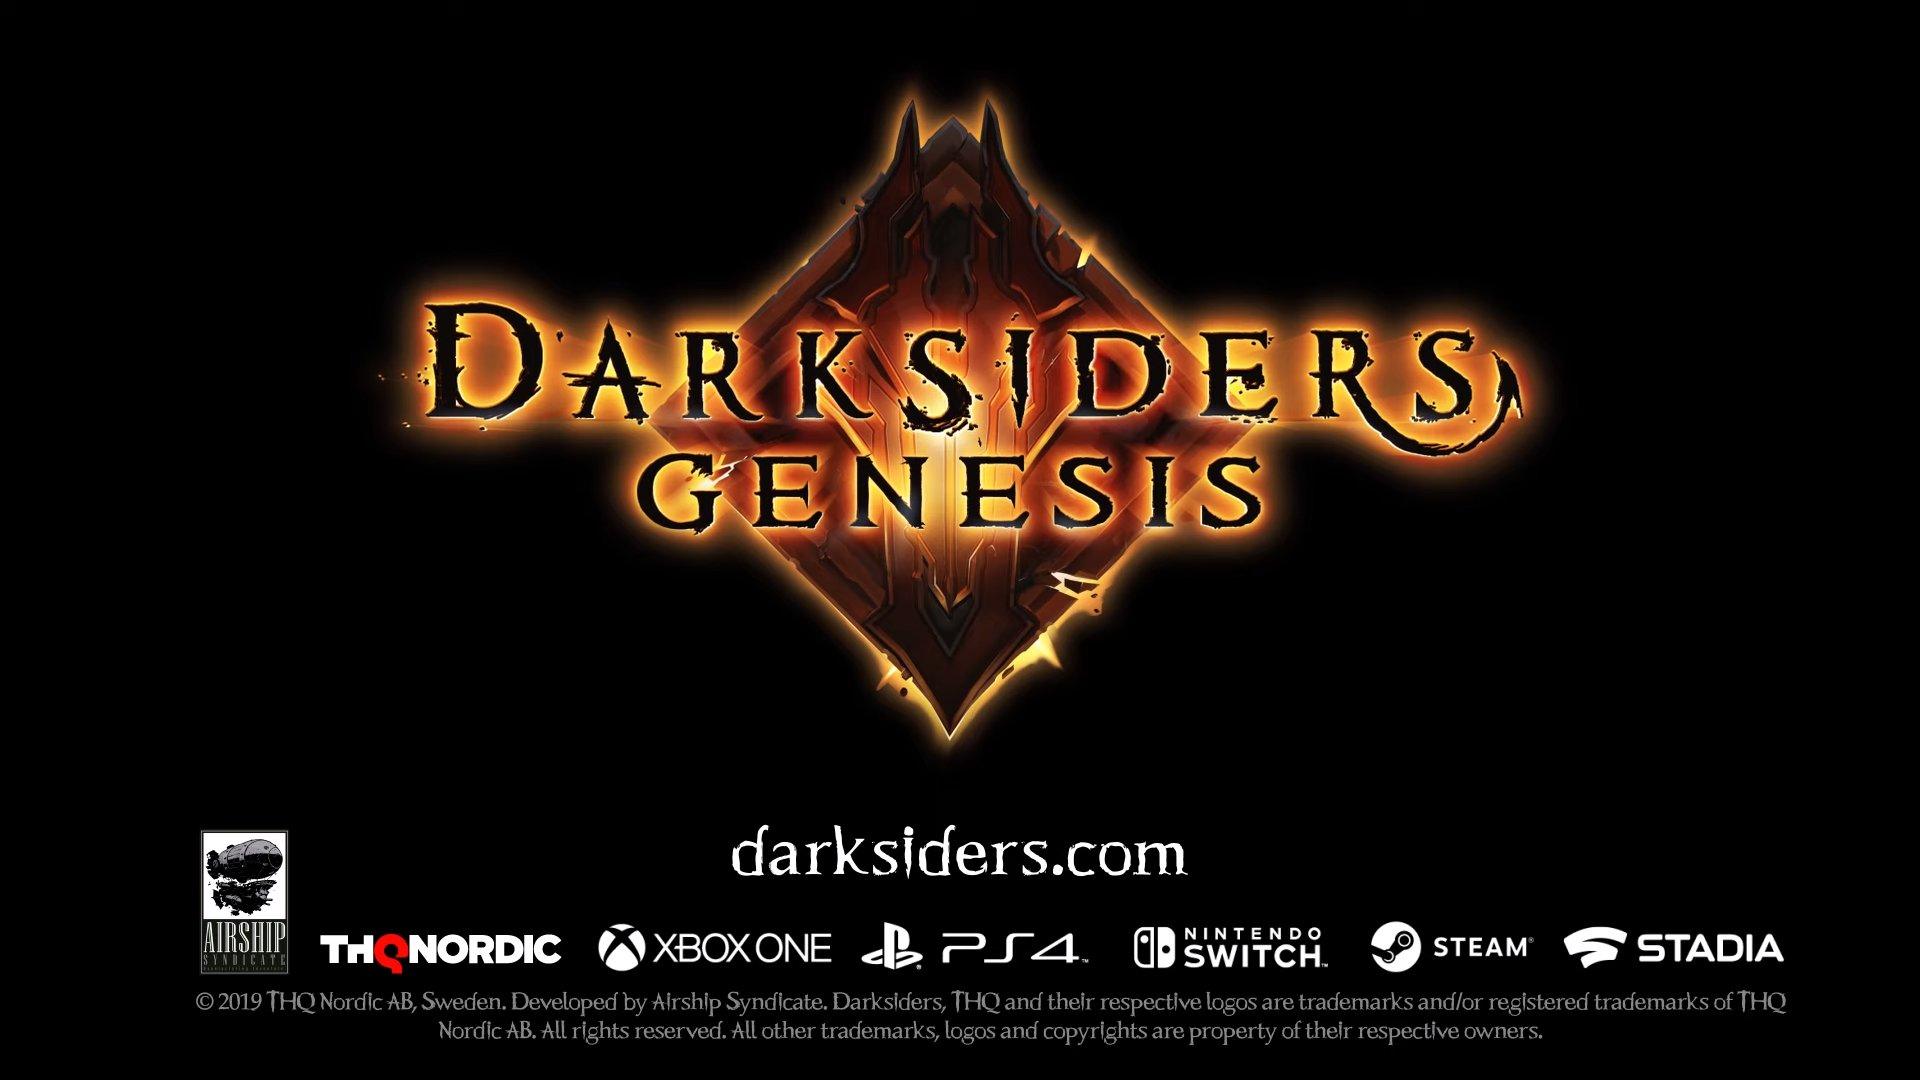 Darksiders Genesis announced with new trailer Header Image